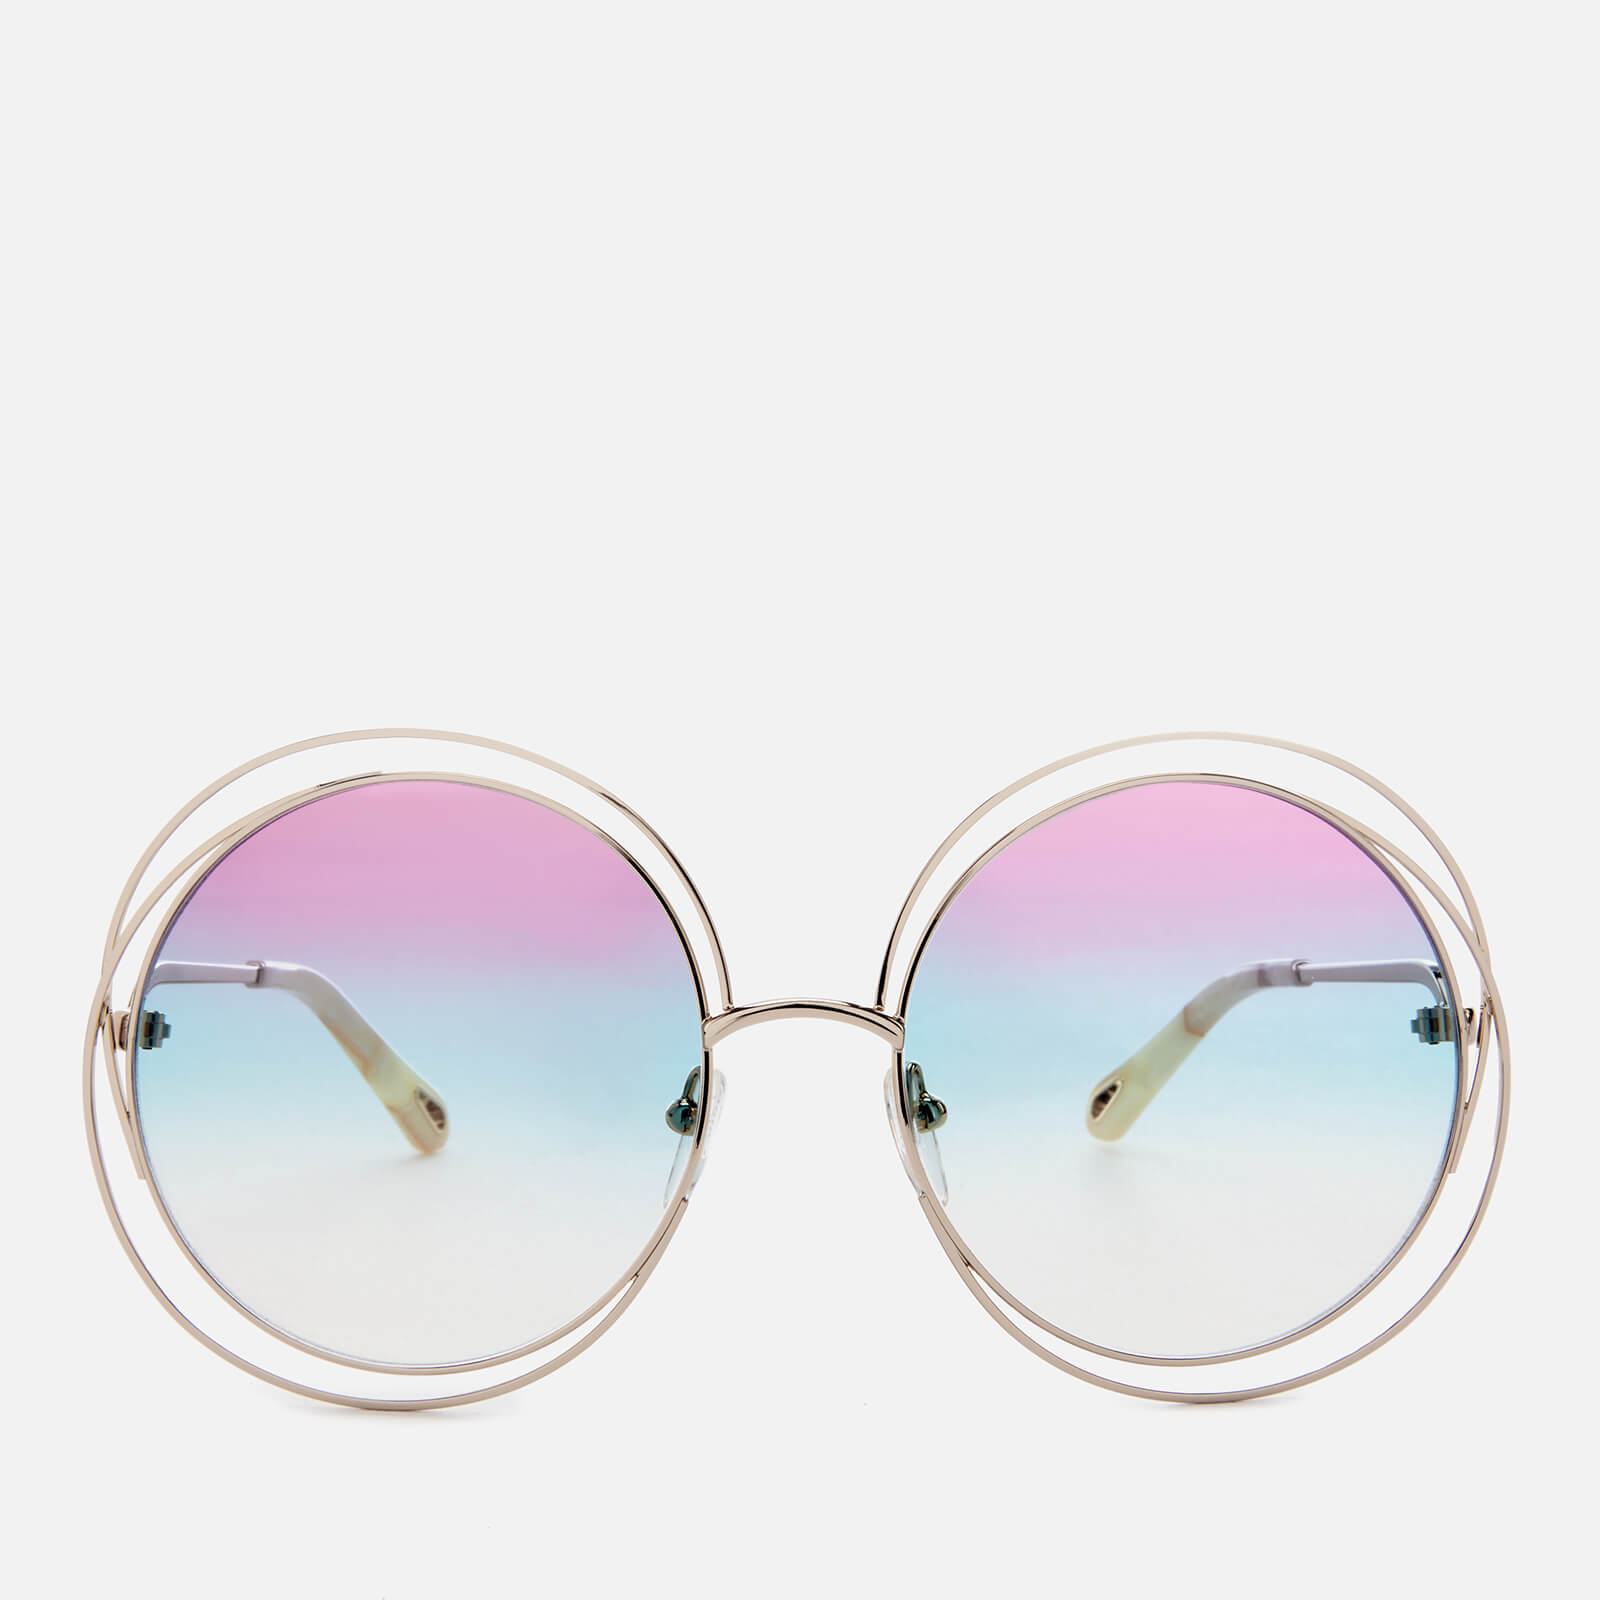 4942ec18ef8a Chloe Women s Carlina Round-Frame Sunglasses - Gold Purple - Free UK  Delivery over £50